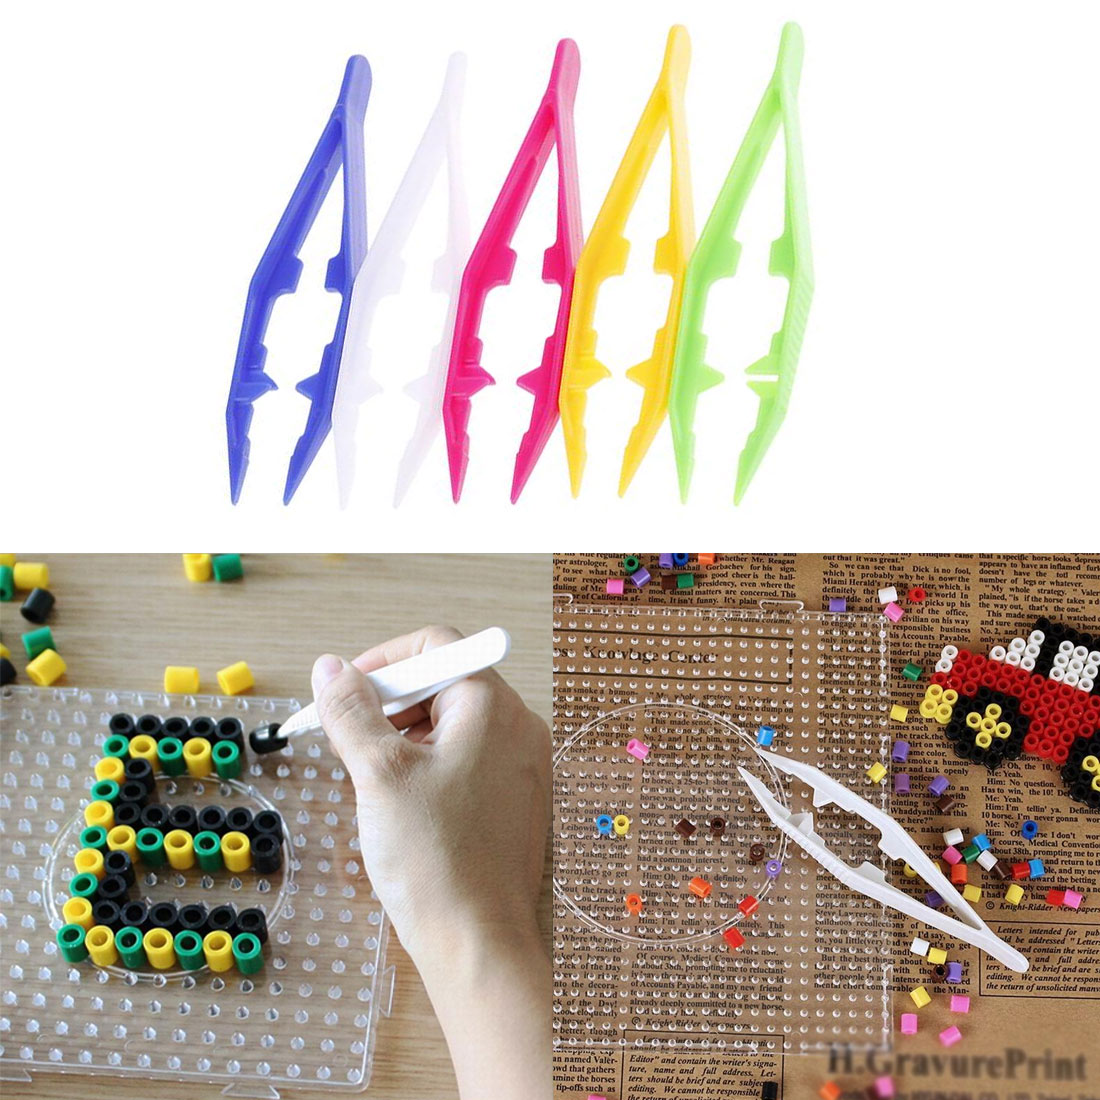 Random Color 1pcs Education Toy Tools Tweezers Clips Kids Craft DIY Tool For Children Kids Boys Girls Intellectual Development